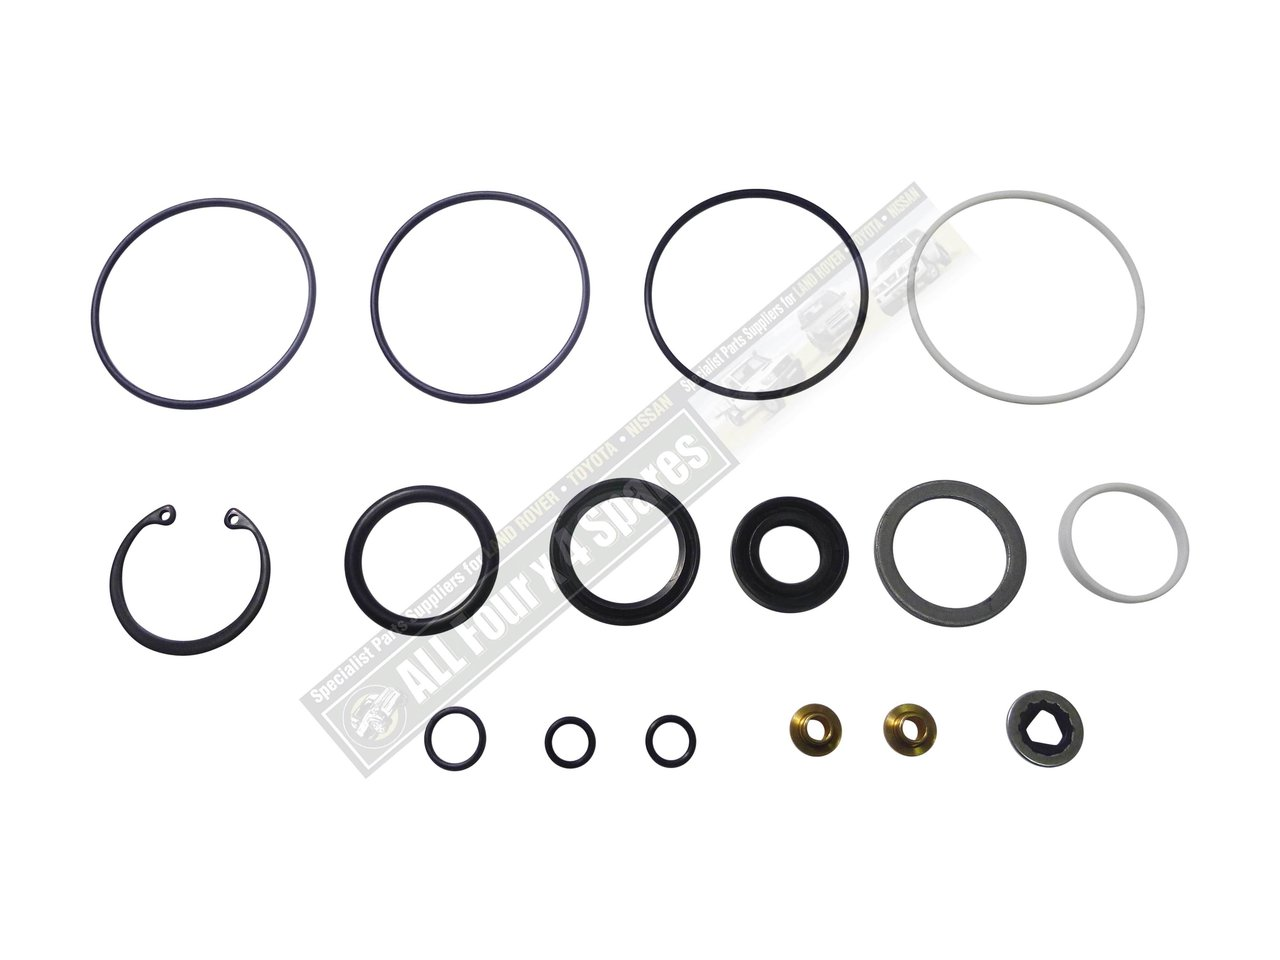 Power Steering Box Seal Kit Hilux Rn105 Ln106 To